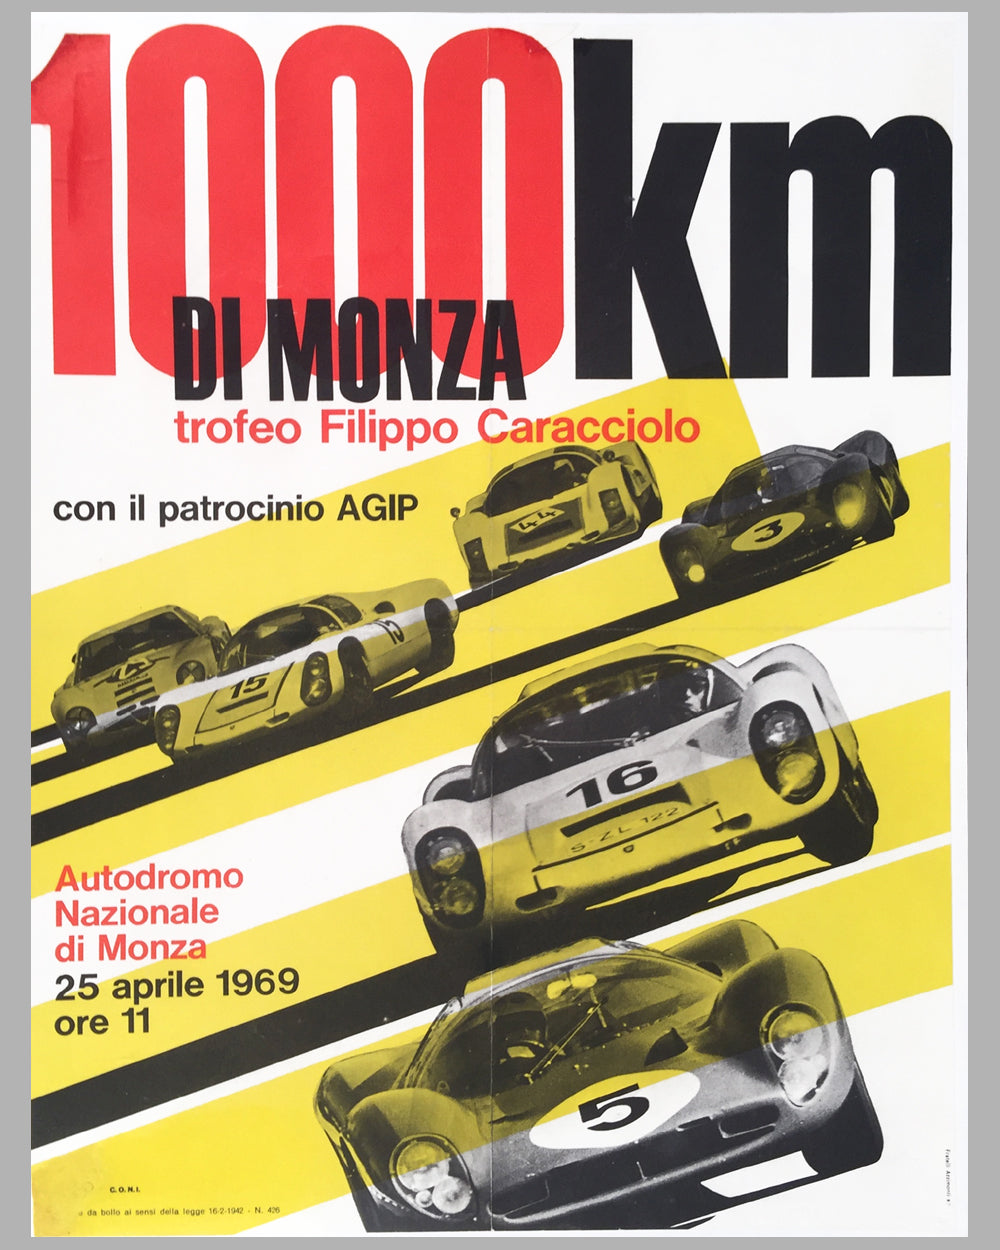 1969 - 1000 KM di Monza official poster